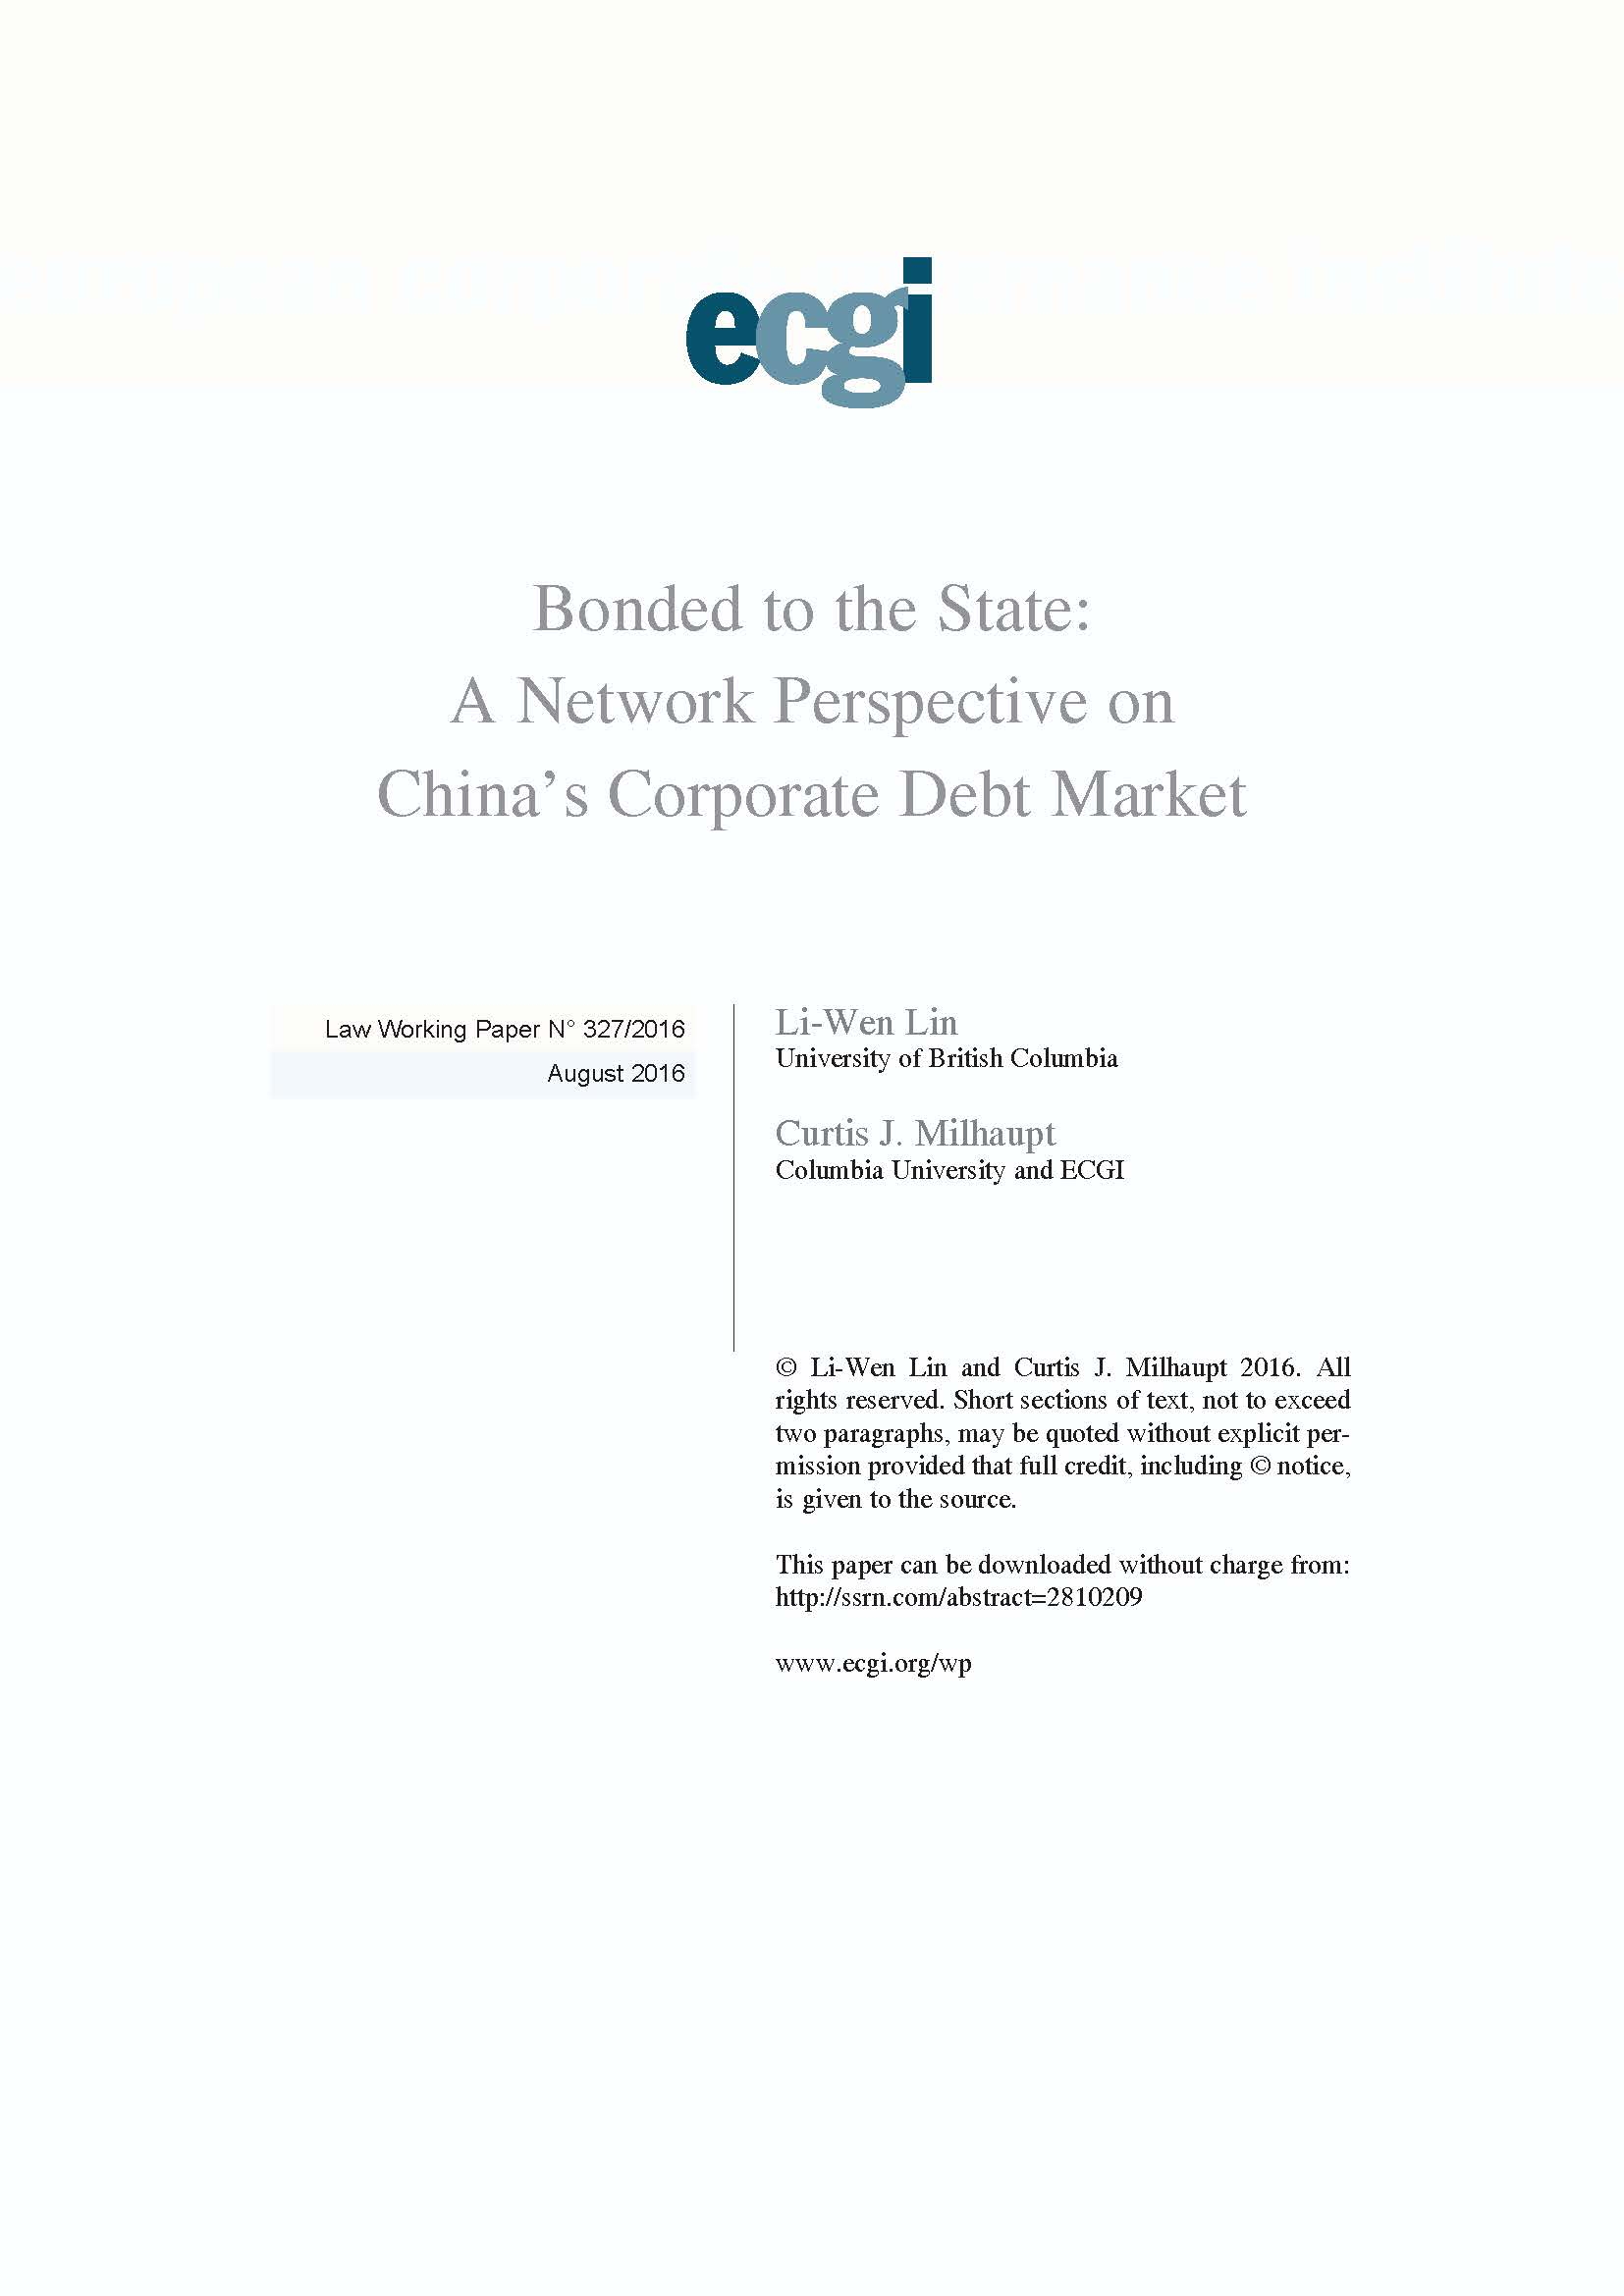 Bonded to the State: A Network Perspective on China?s Corporate Debt